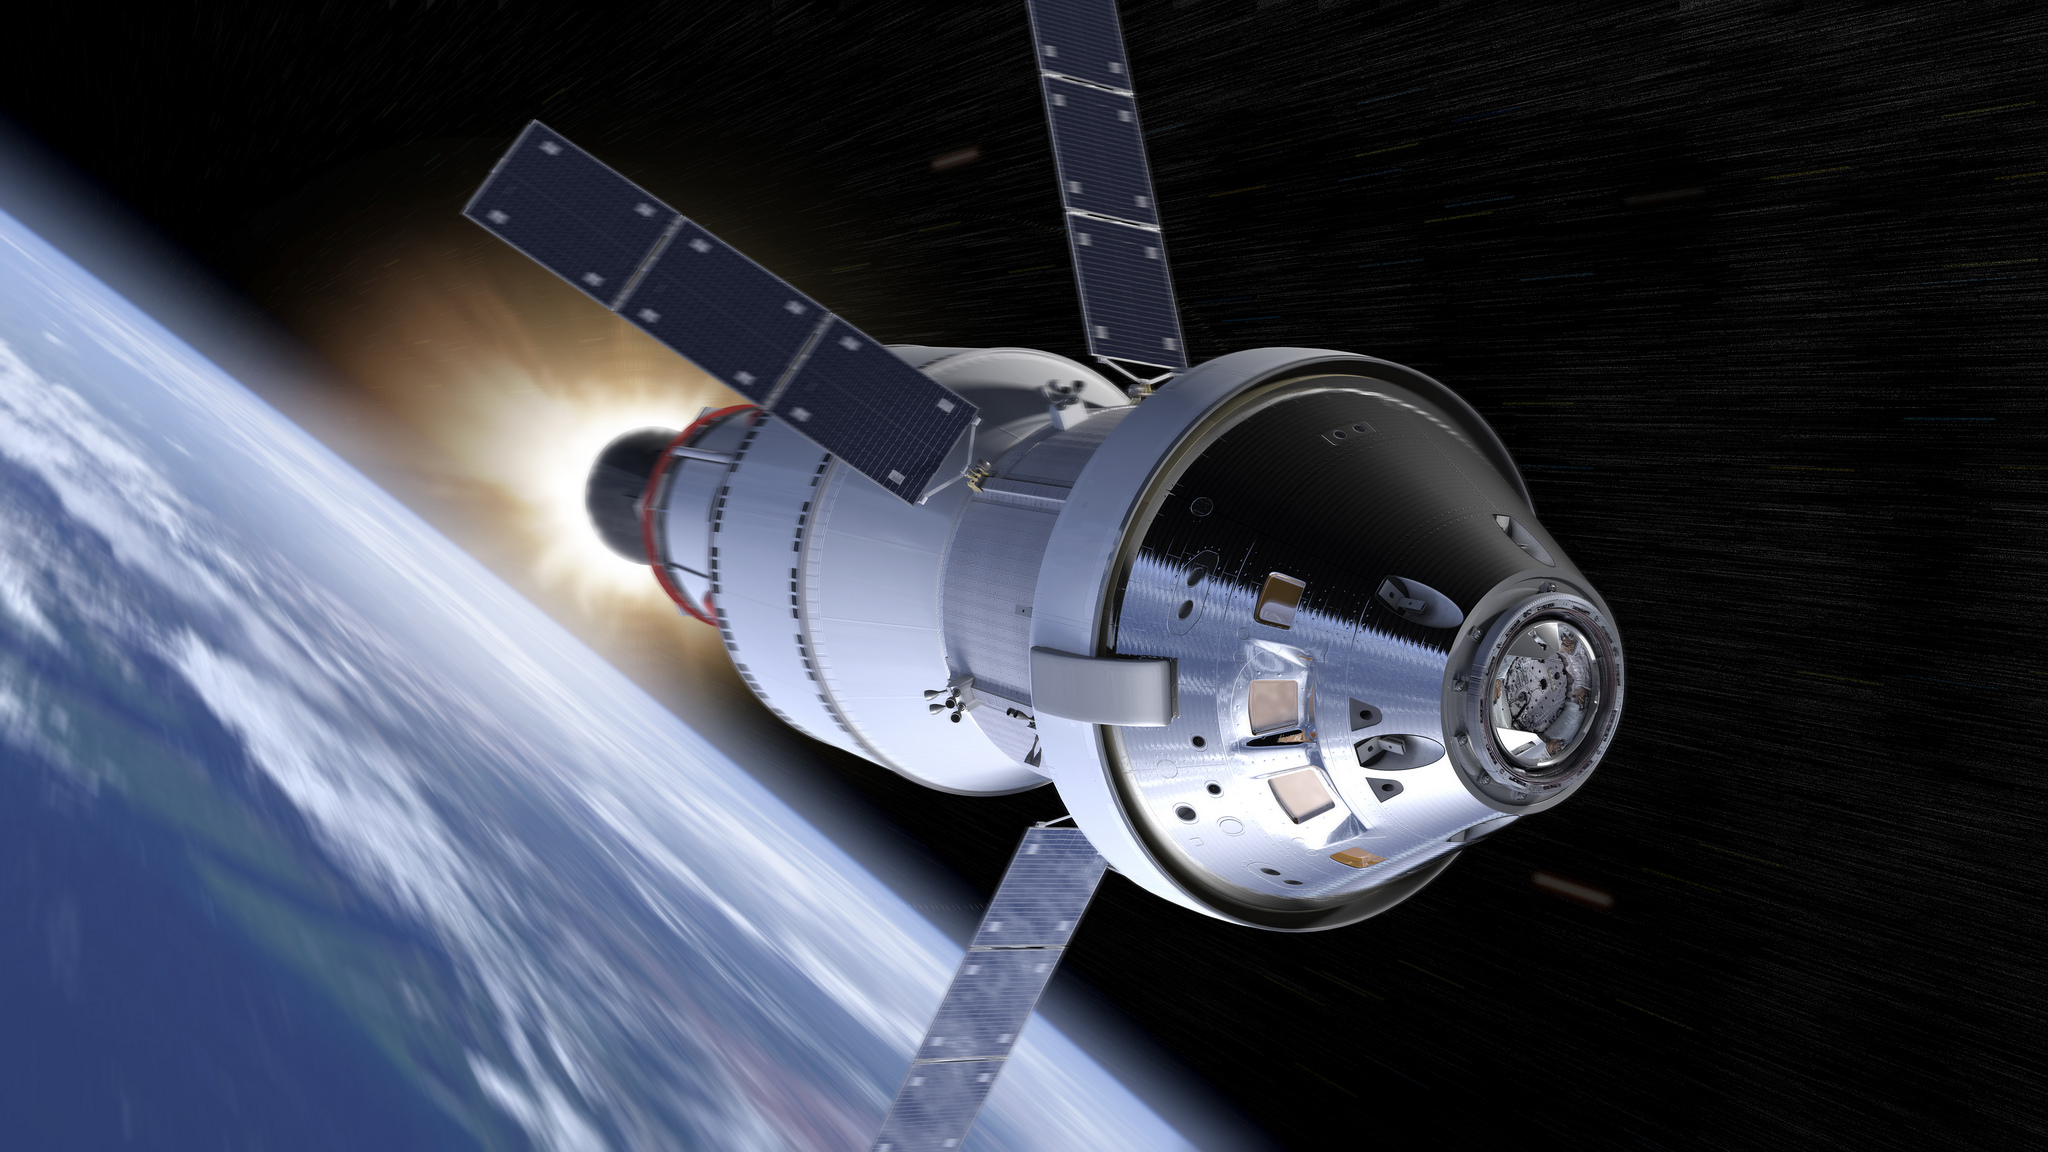 NASA's Orion spacecraft will be able to take humans further away from Earth than ever before. - Image Credits: NASA